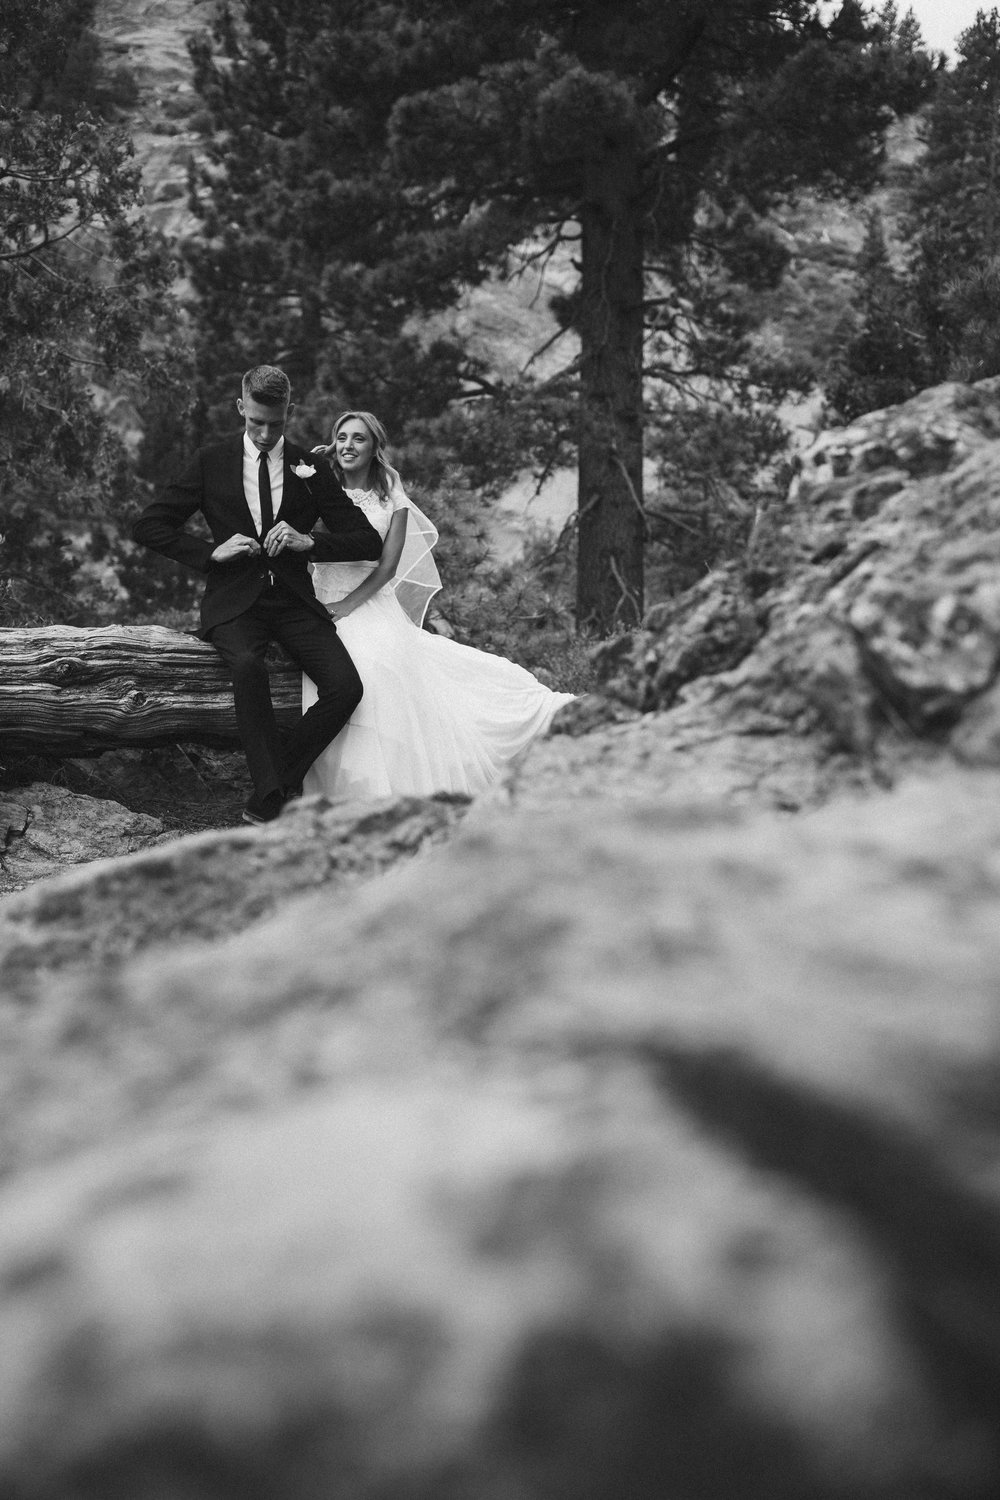 0M7A1128vildphotography-adventurewedding-adventurouswedding-tahoewedding-laketahoewedding-adventureelopement-laketahoeweddingphotographer-wedding-photographer-weddingphotographer-Chase-Sam.jpg